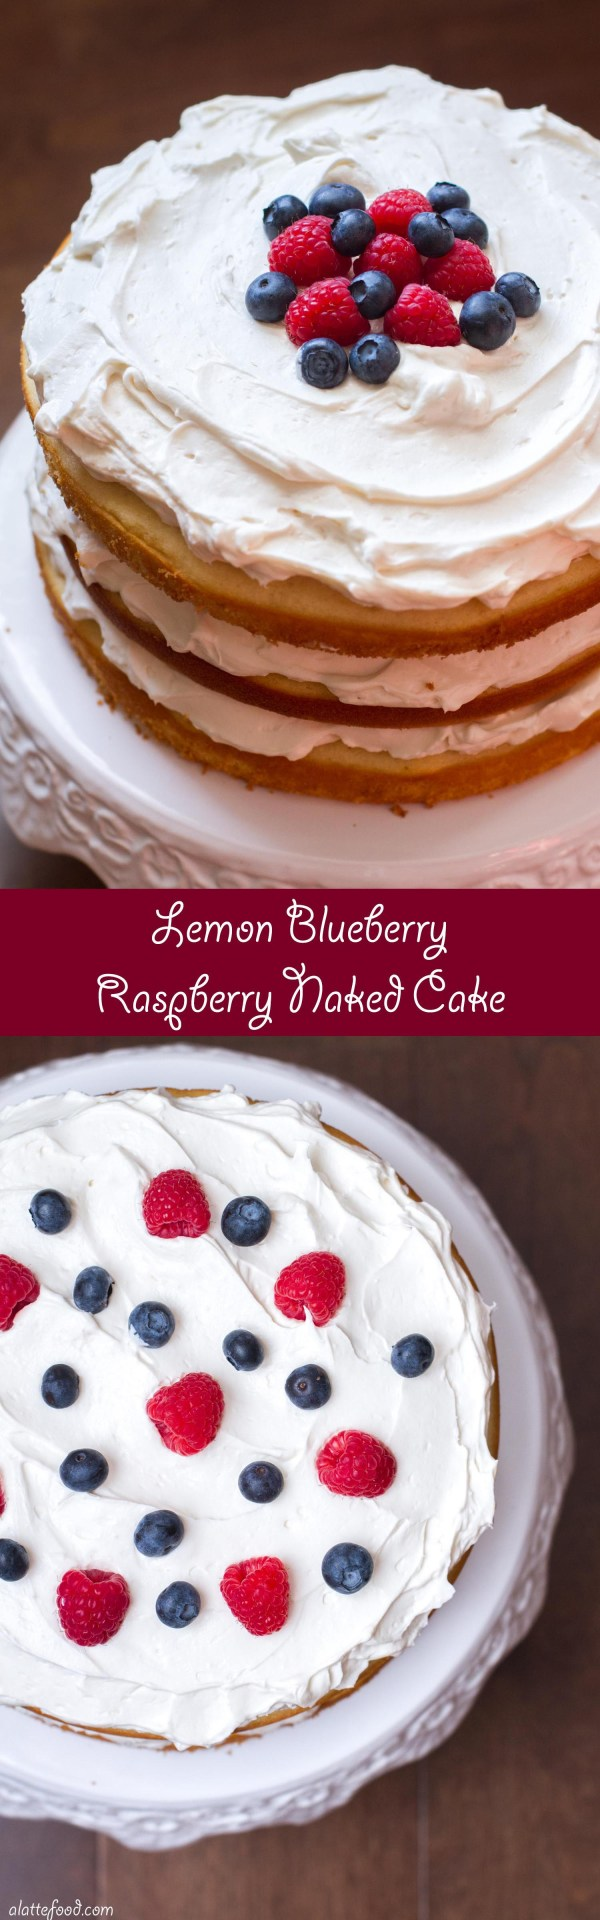 This lemon naked cake is layered with a whipped cream cheese frosting and sweet raspberries and blueberries. It's a light and fluffy cake that tastes like summer and looks perfect for the 4th!